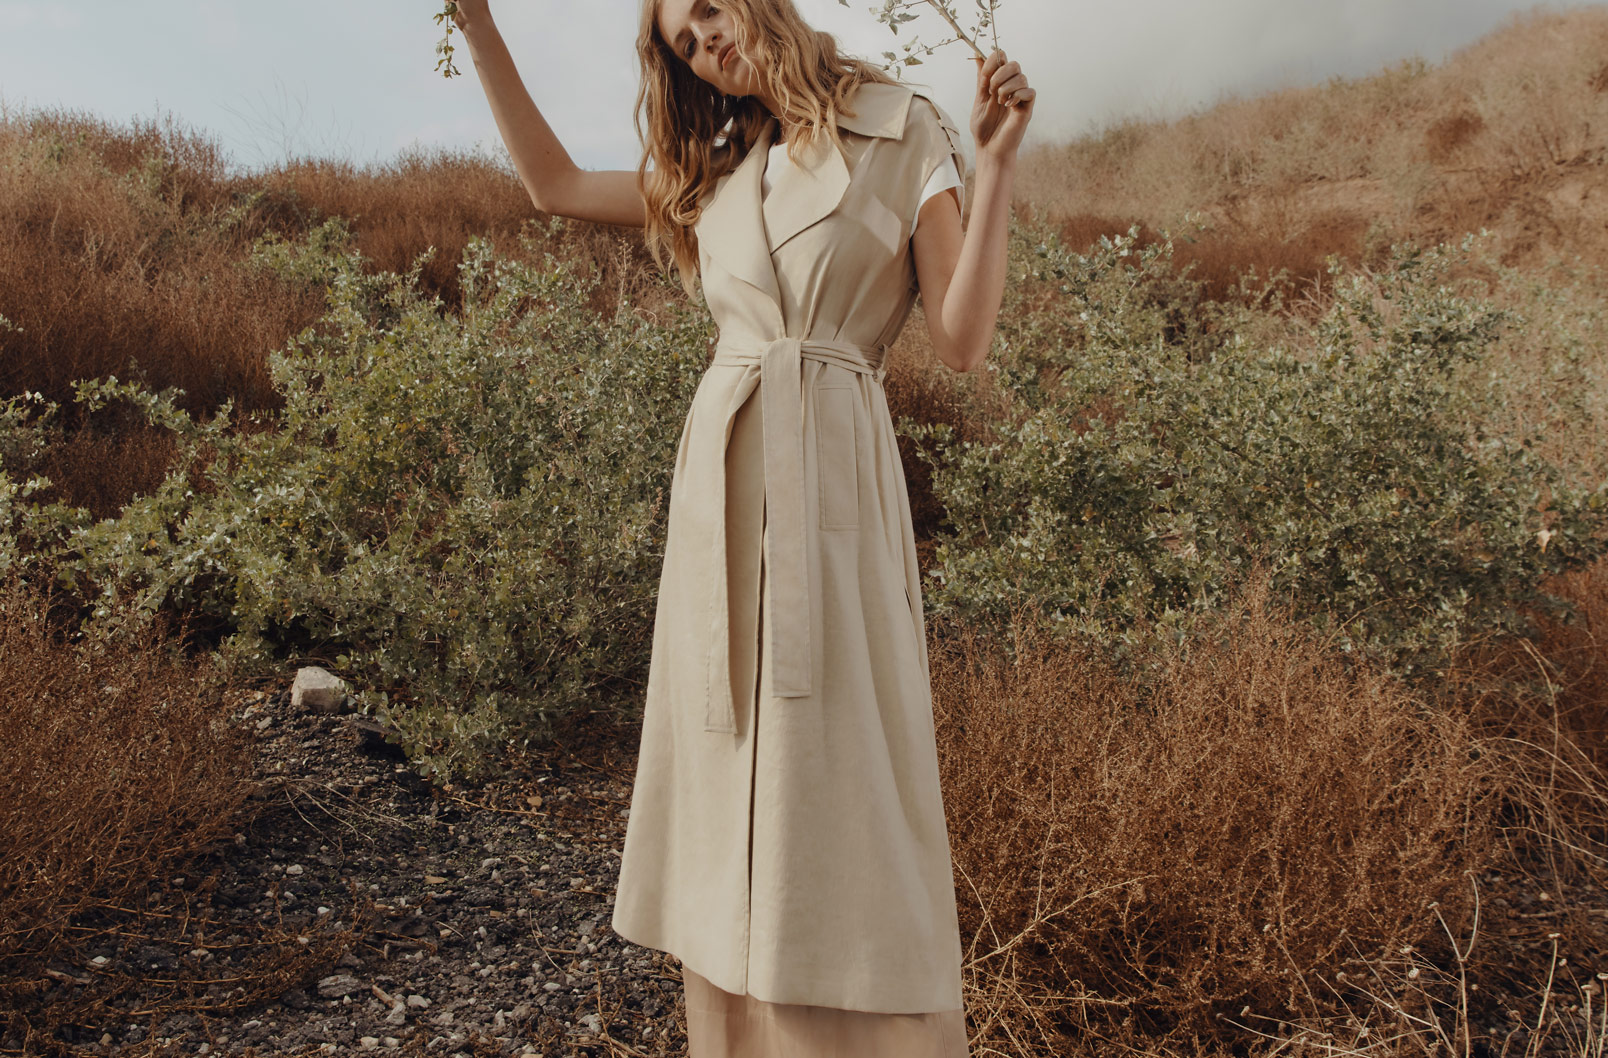 Model wearing Linen Sleeveless Trench in hilly meadow